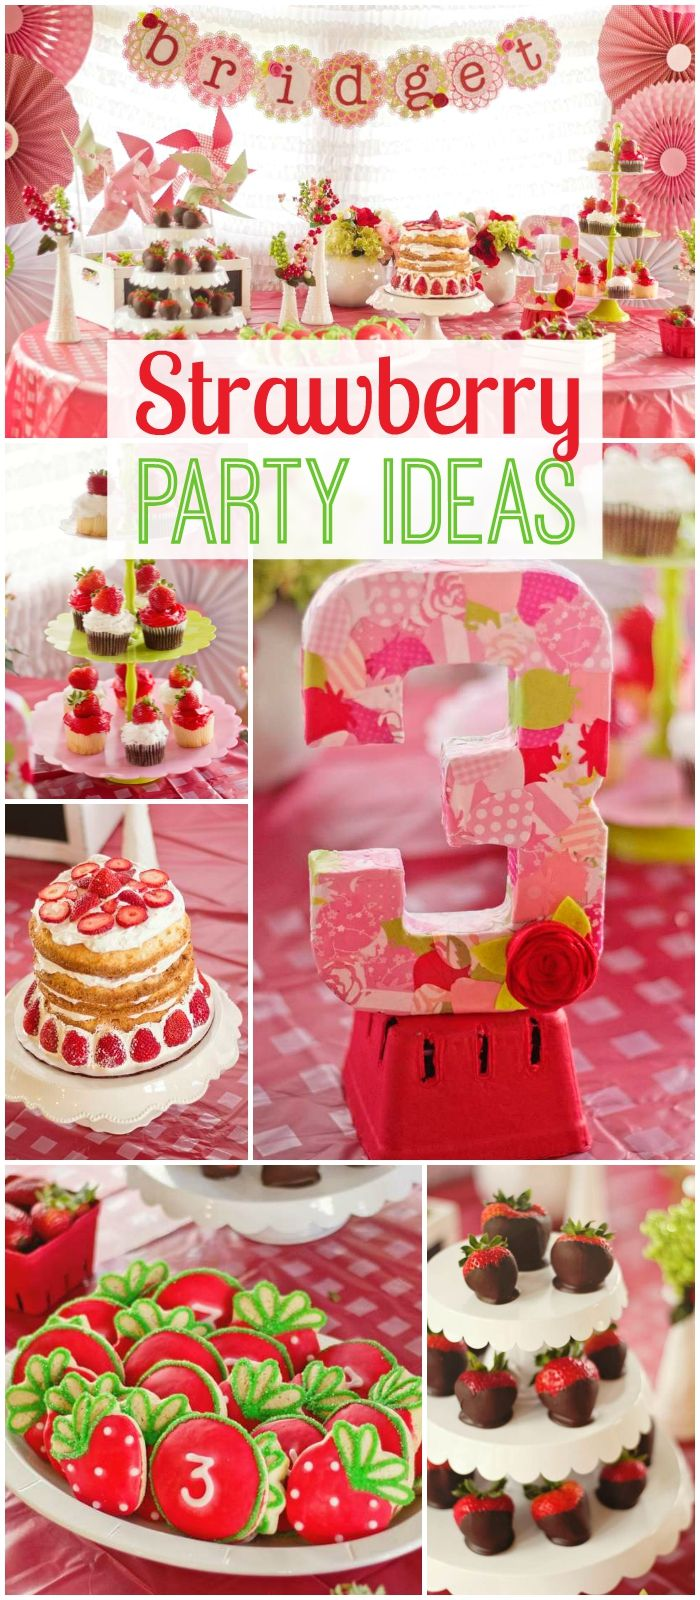 What an amazing strawberry themed birthday party  See more party ideas at CatchMyParty com